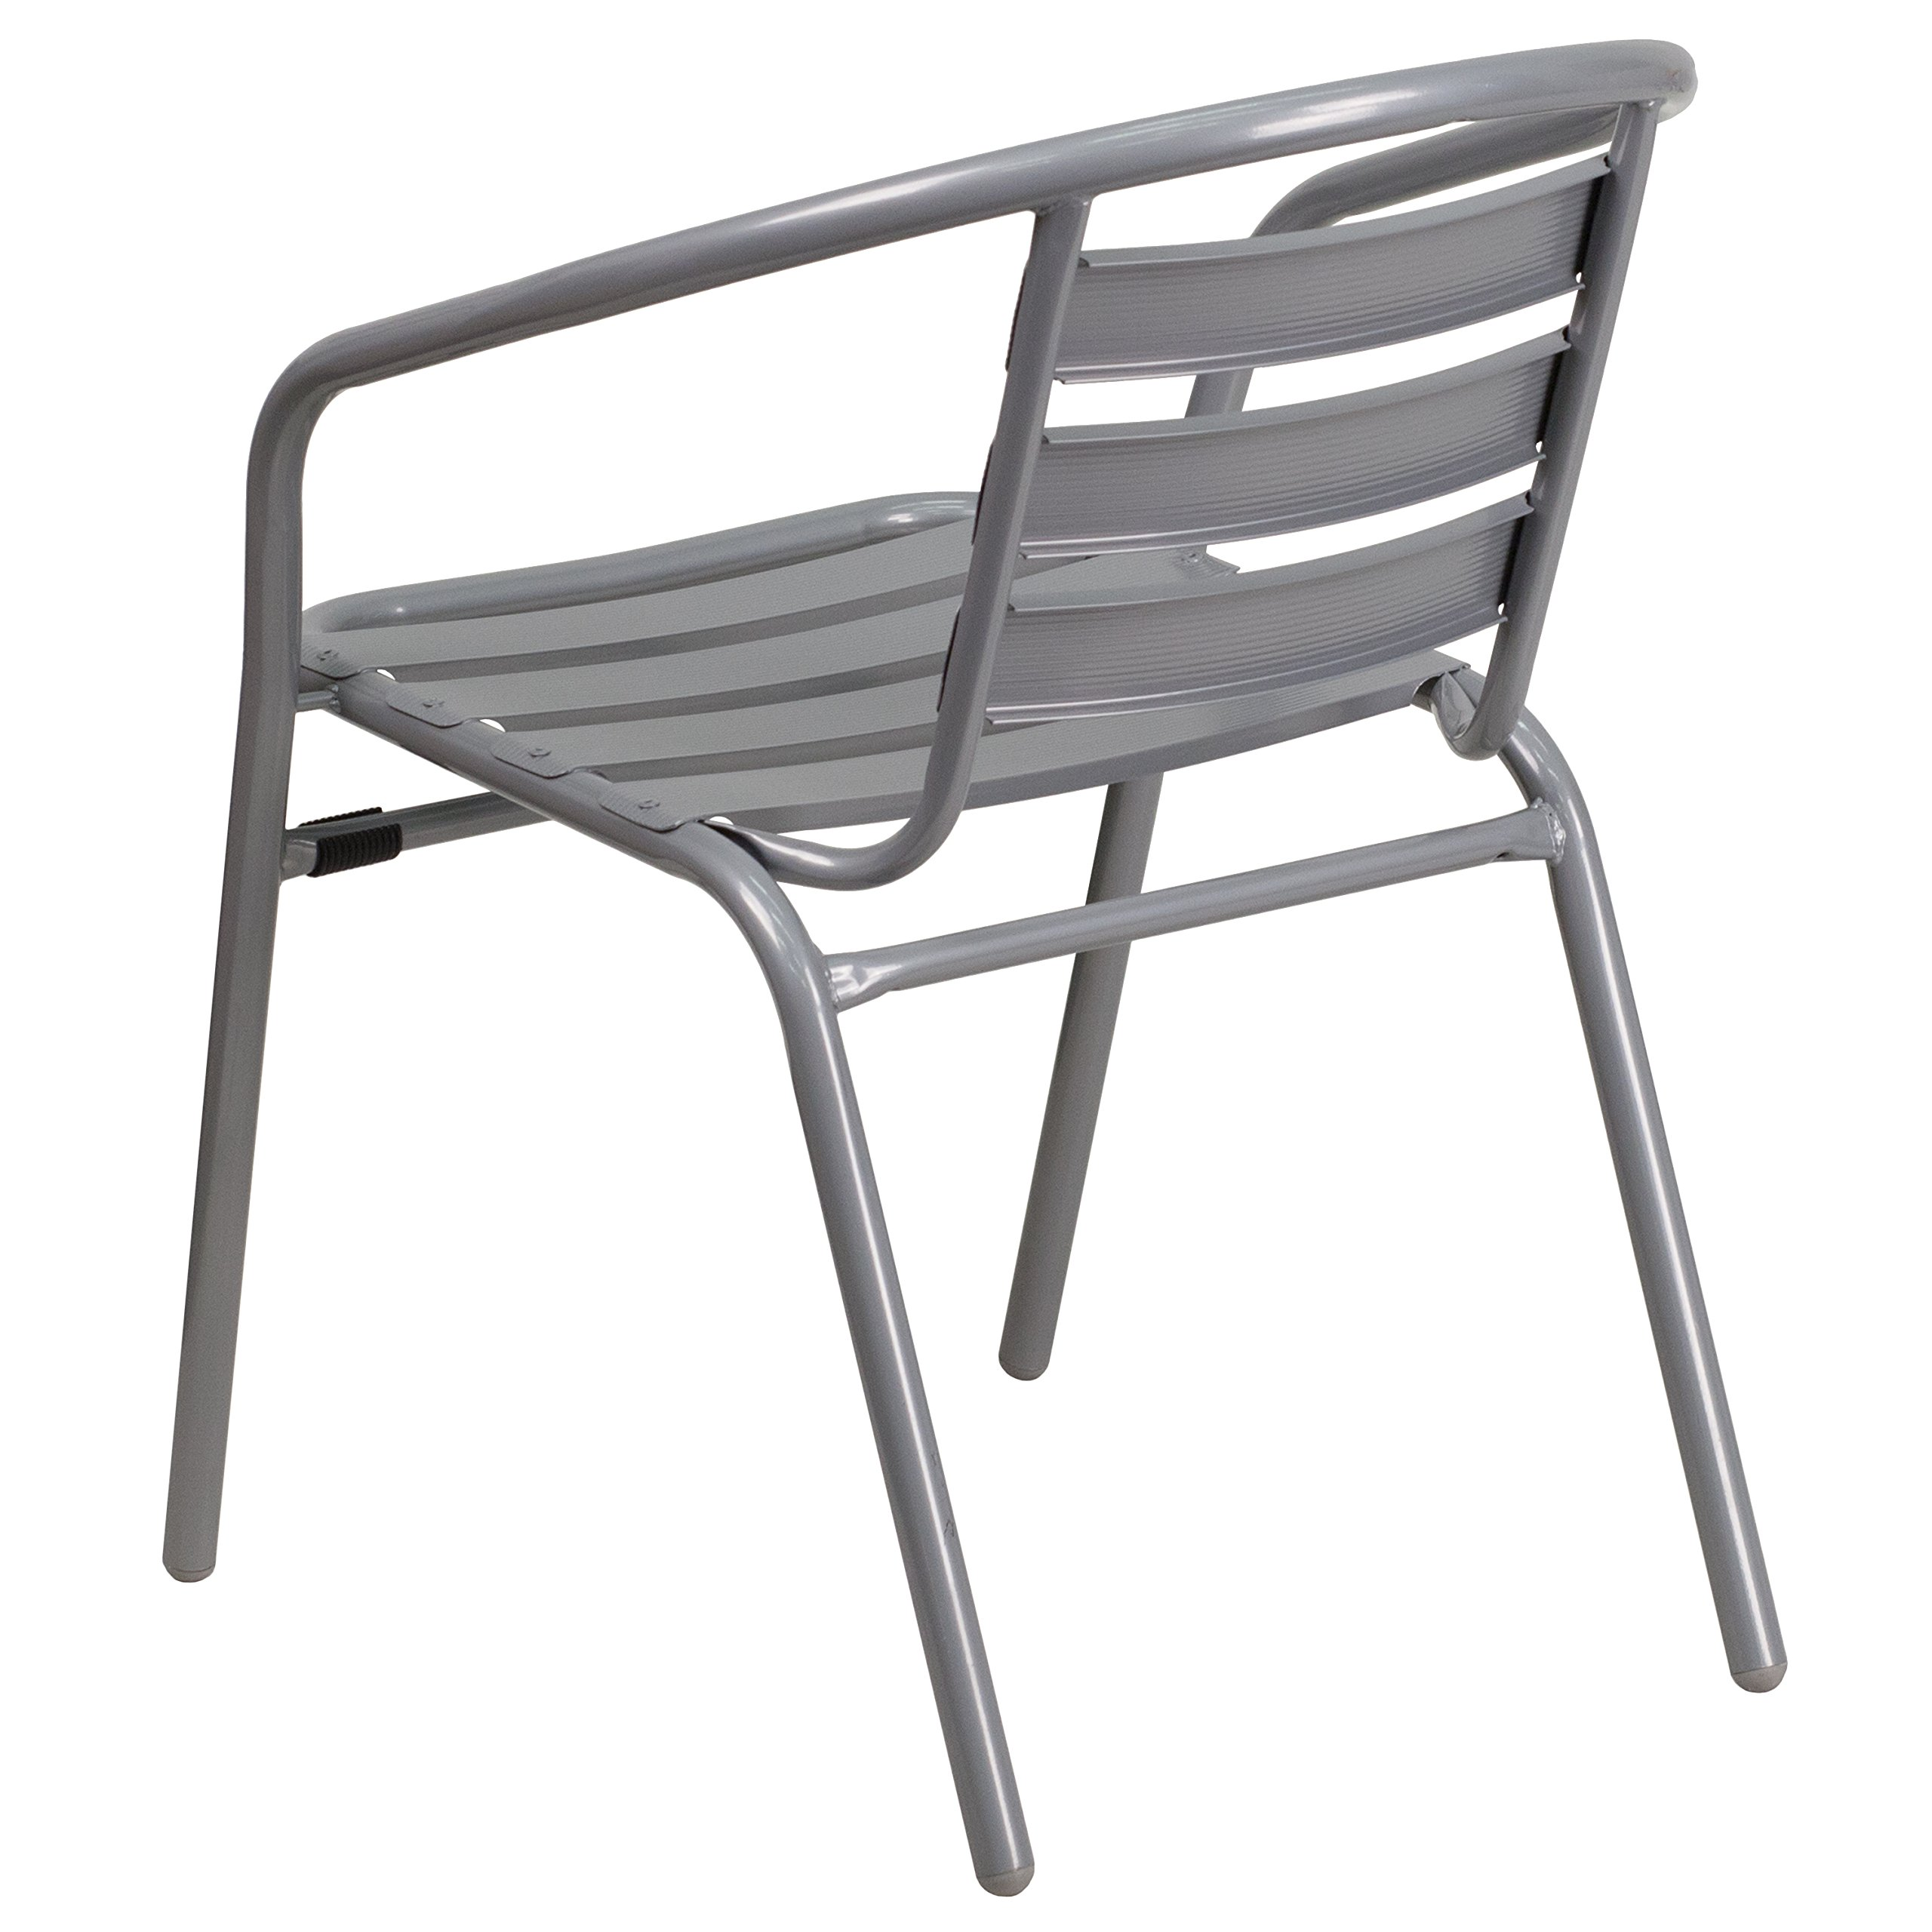 Flash Furniture 4 Pk. Silver Metal Restaurant Stack Chair with Aluminum Slats by Flash Furniture (Image #4)